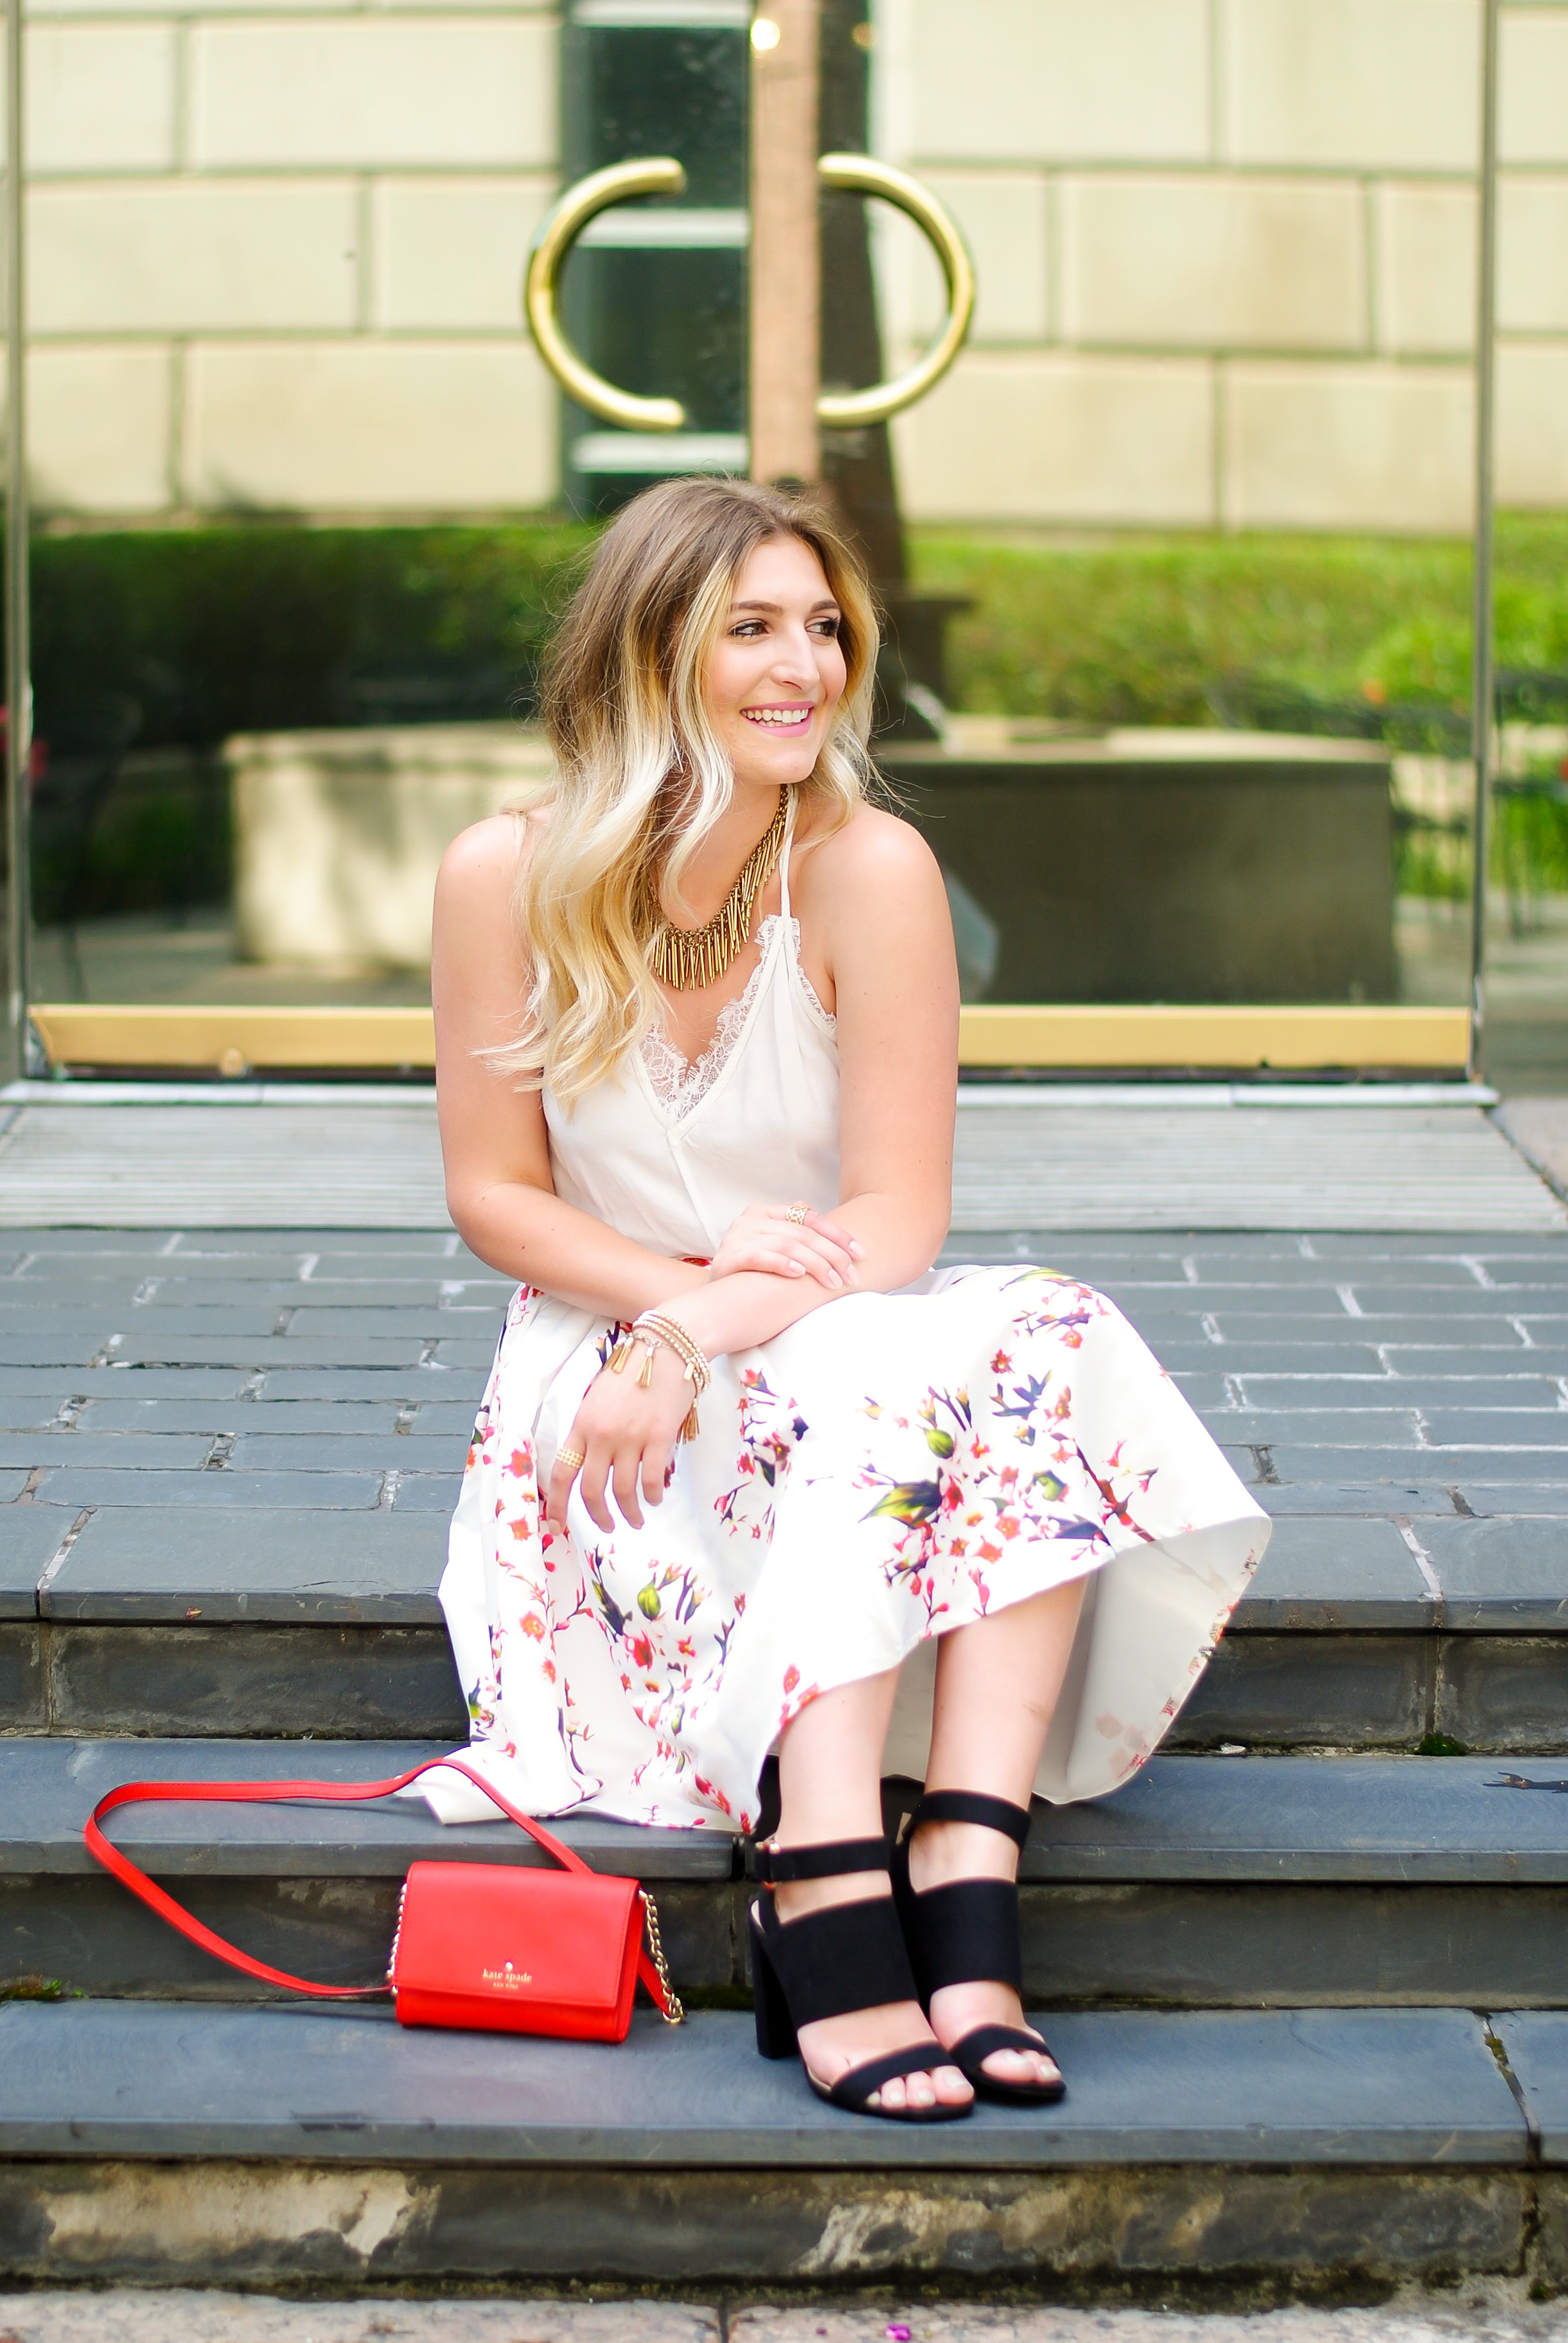 SheIn floral feminine look | Audrey Madison Stowe Blog